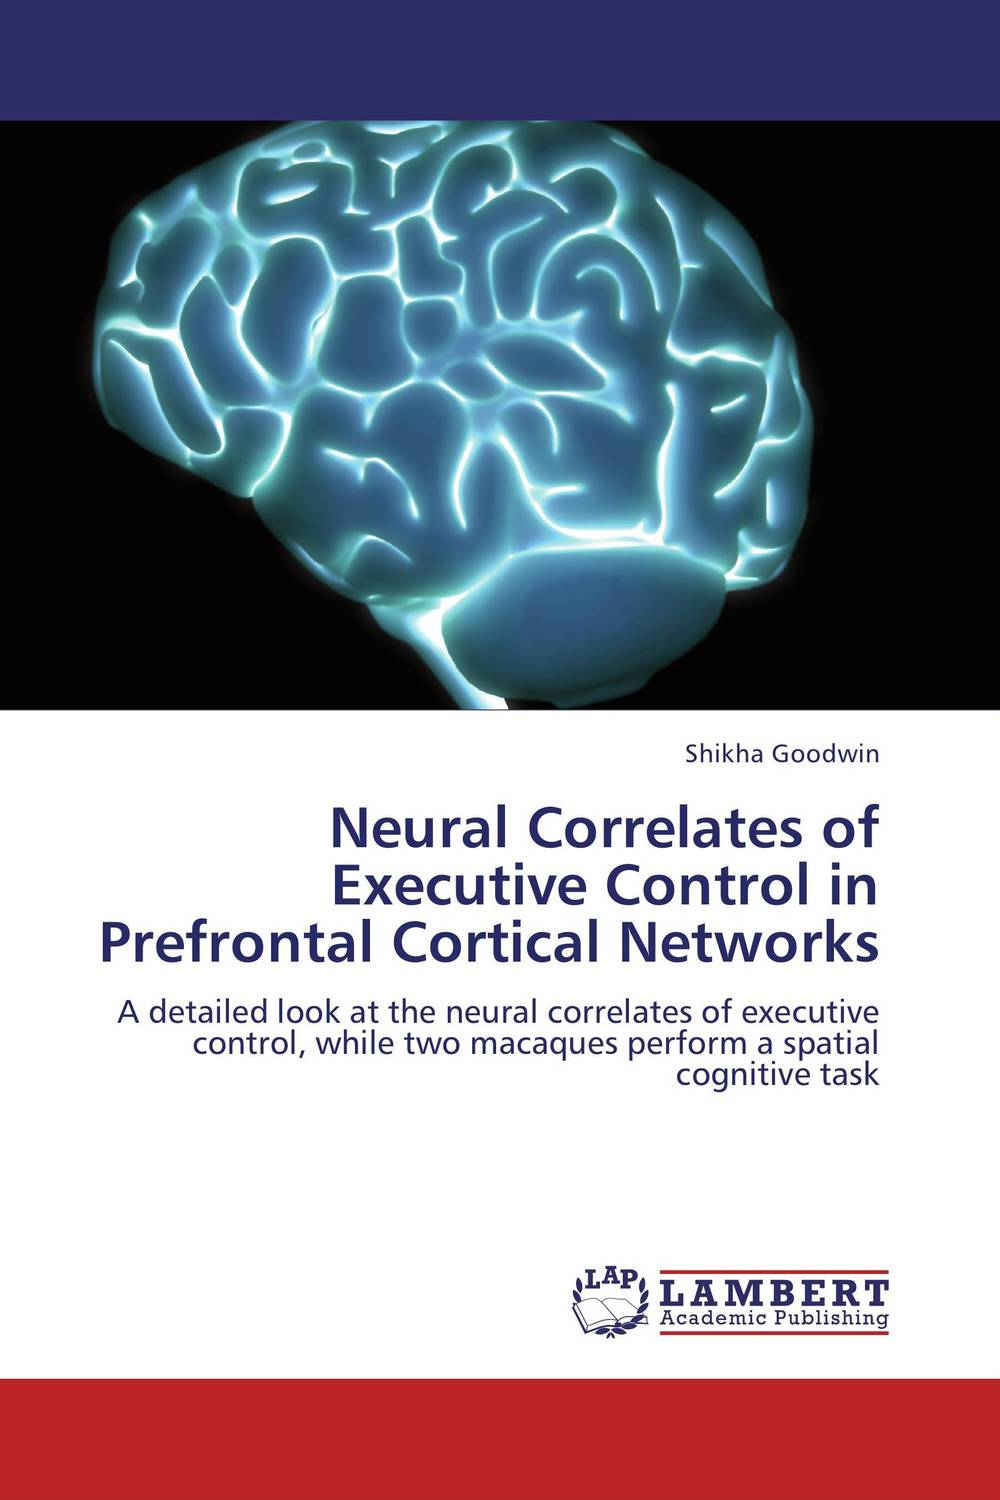 Neural Correlates of Executive Control in Prefrontal Cortical Networks david buckham executive s guide to solvency ii